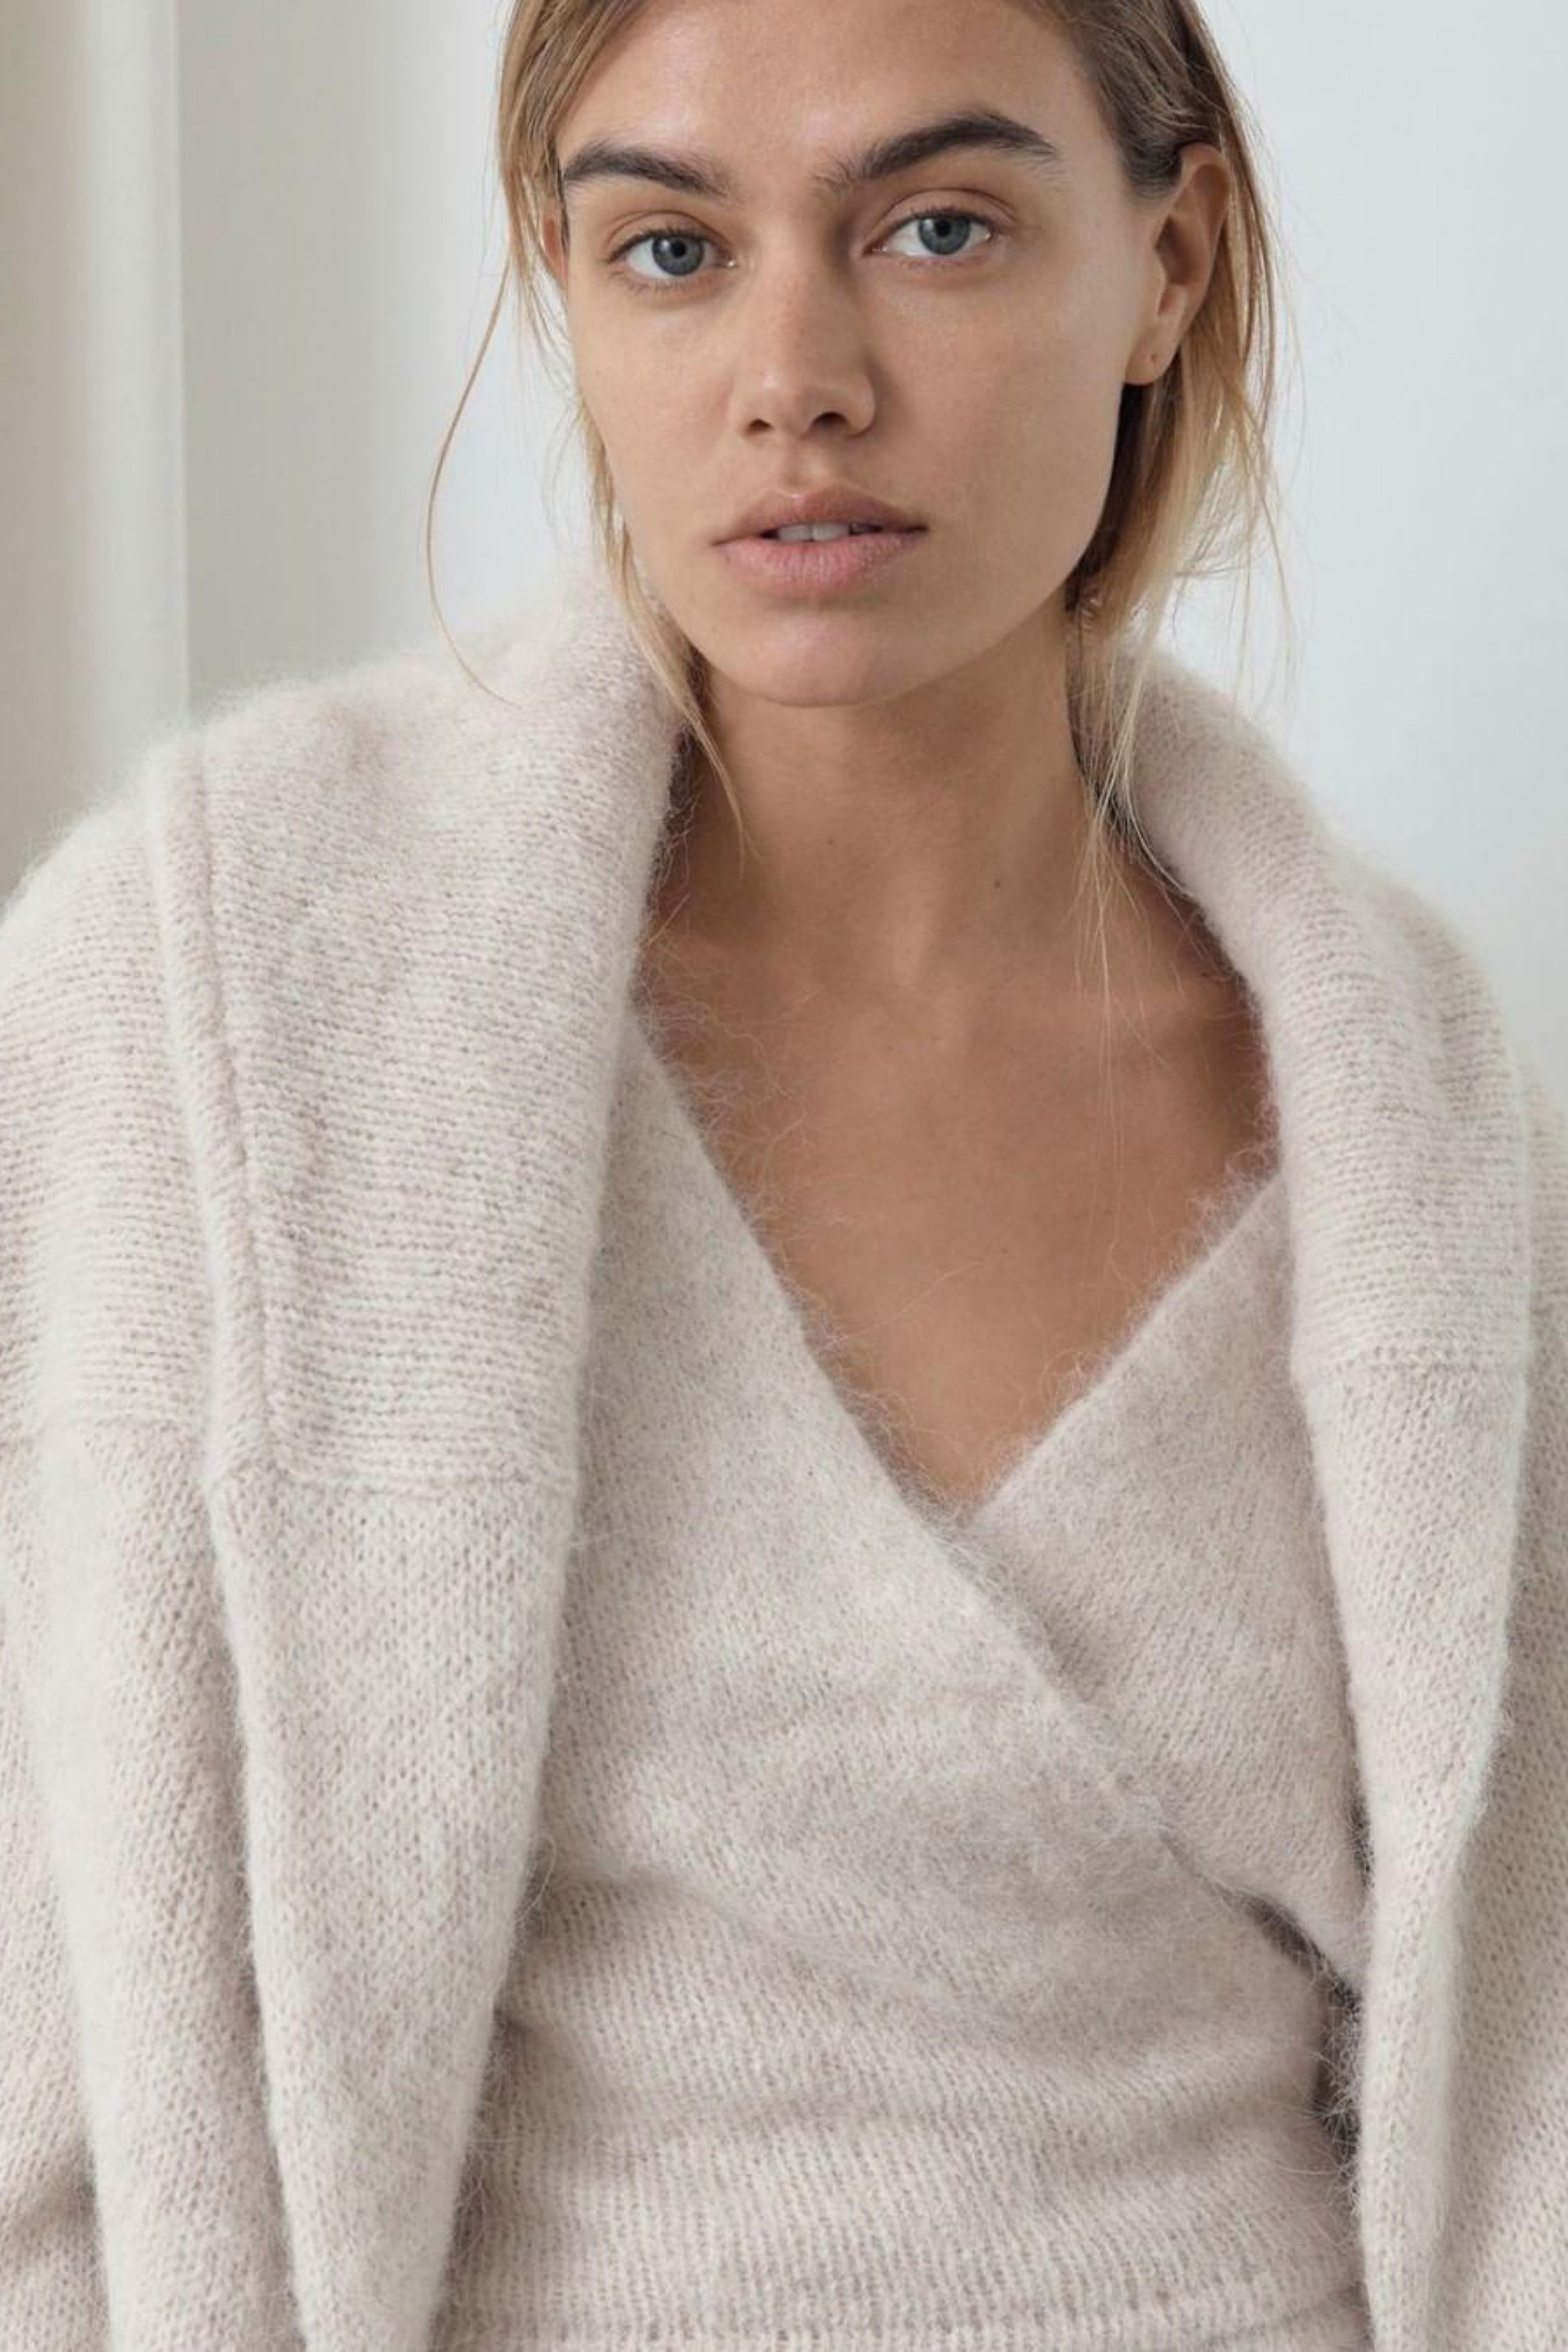 Work from home consciously and comfortably with these ethical loungewear brands.